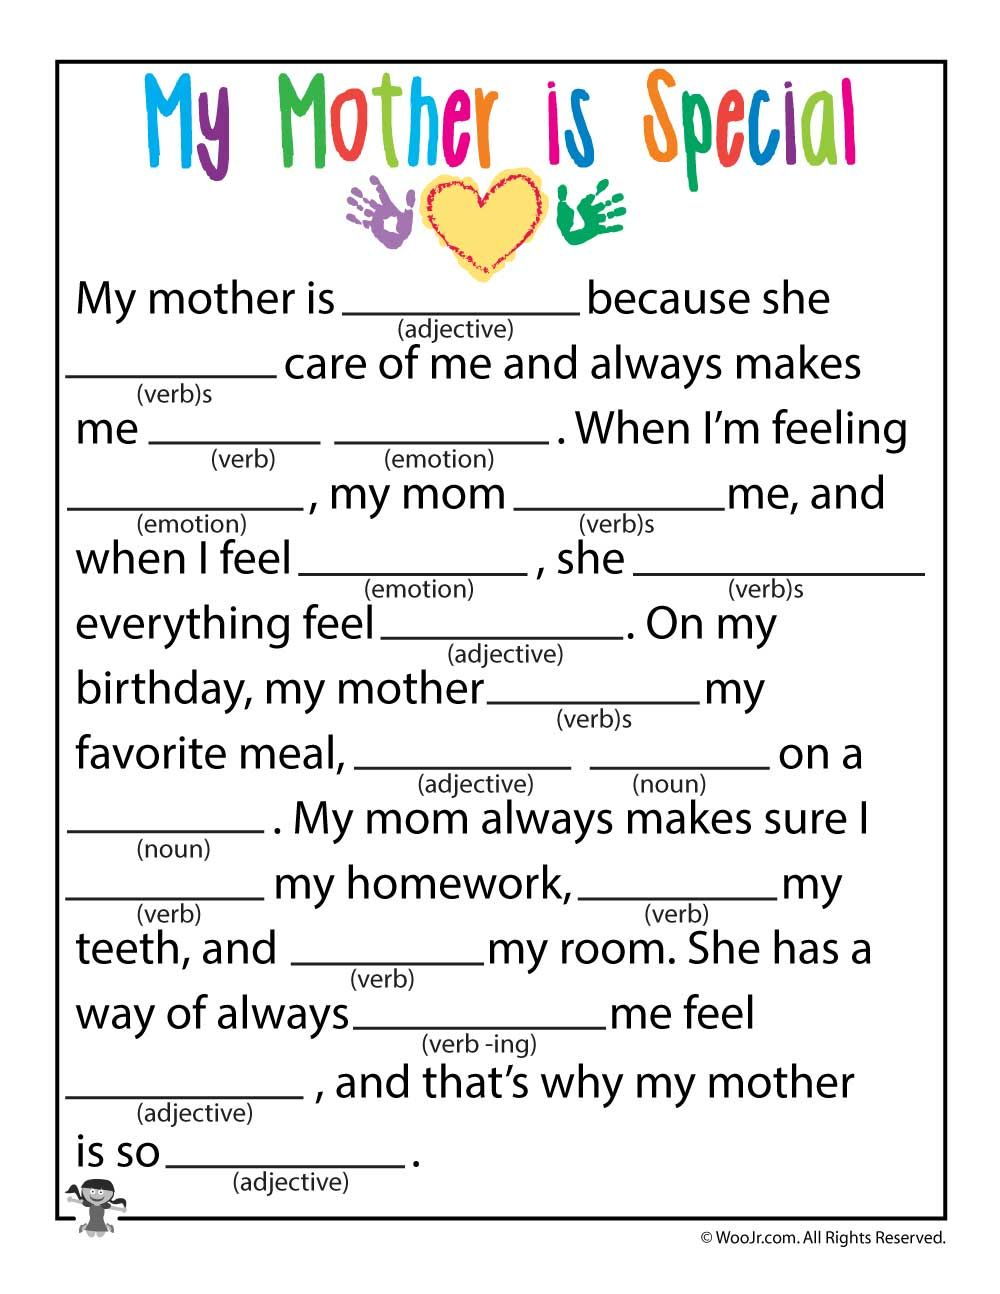 To Our Superwomen: 30 Best Words to Describe Mom - Tosaylib